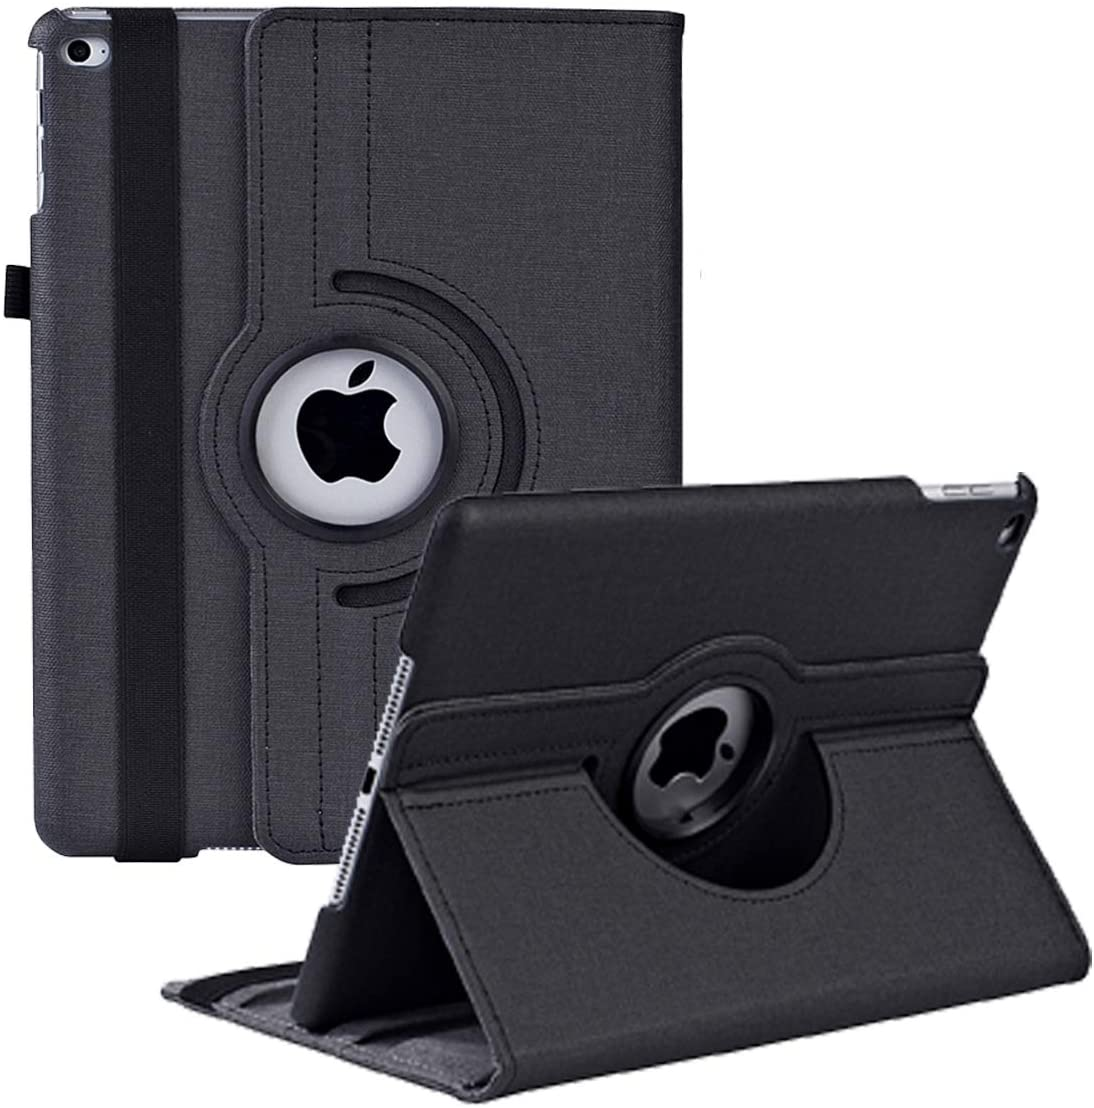 Case for iPad 5th/6th Generation 9.7 inch 2018 2017/ipad air 2 Lightweight Smart Anti-Scratch Advanced Leather 360 Degree Rotating Stand Apple Cover with Auto Wake/Sleep (Black)